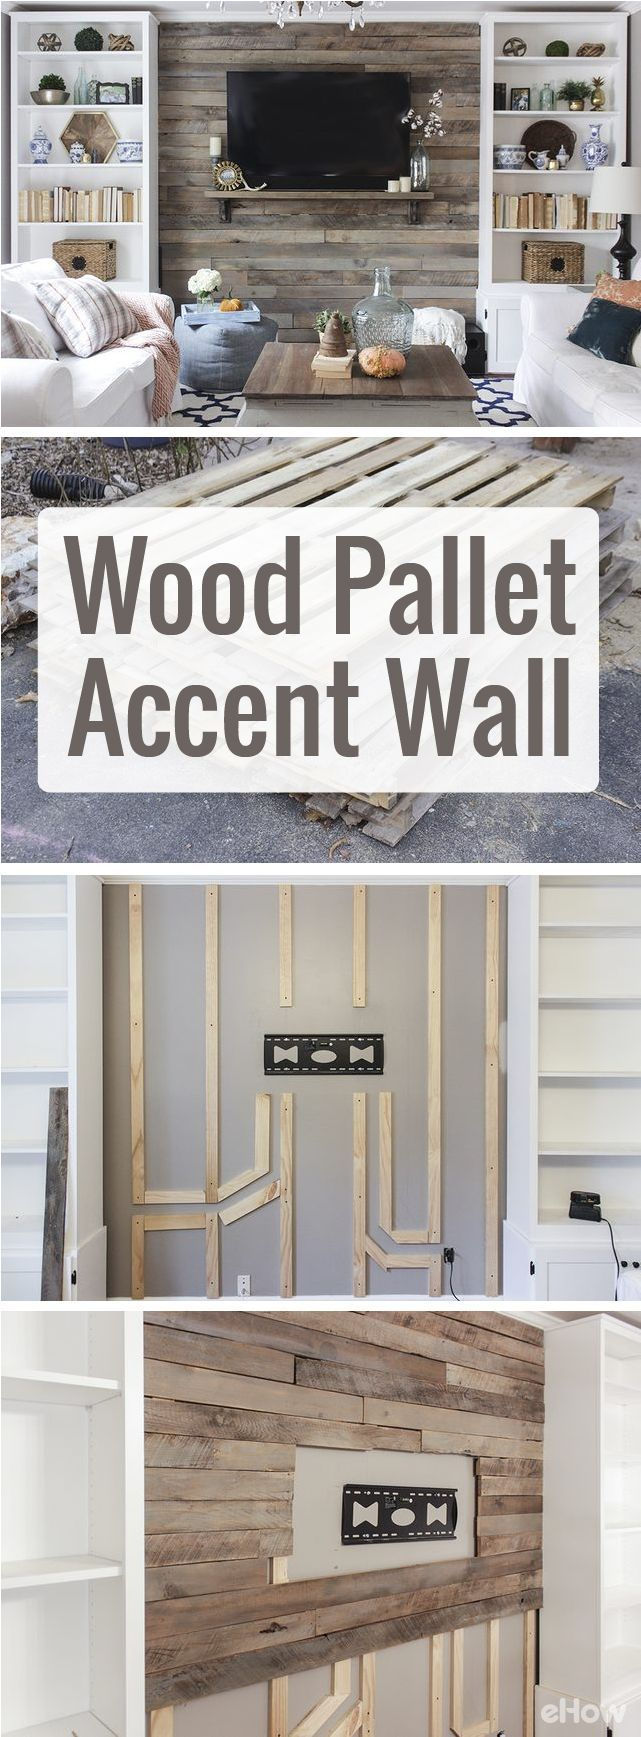 Drastically Change The Look And Feel Of Your Living Room With A Beautiful Wood Pallet Accent Wall Using Pallets Makes This Home Makeover So